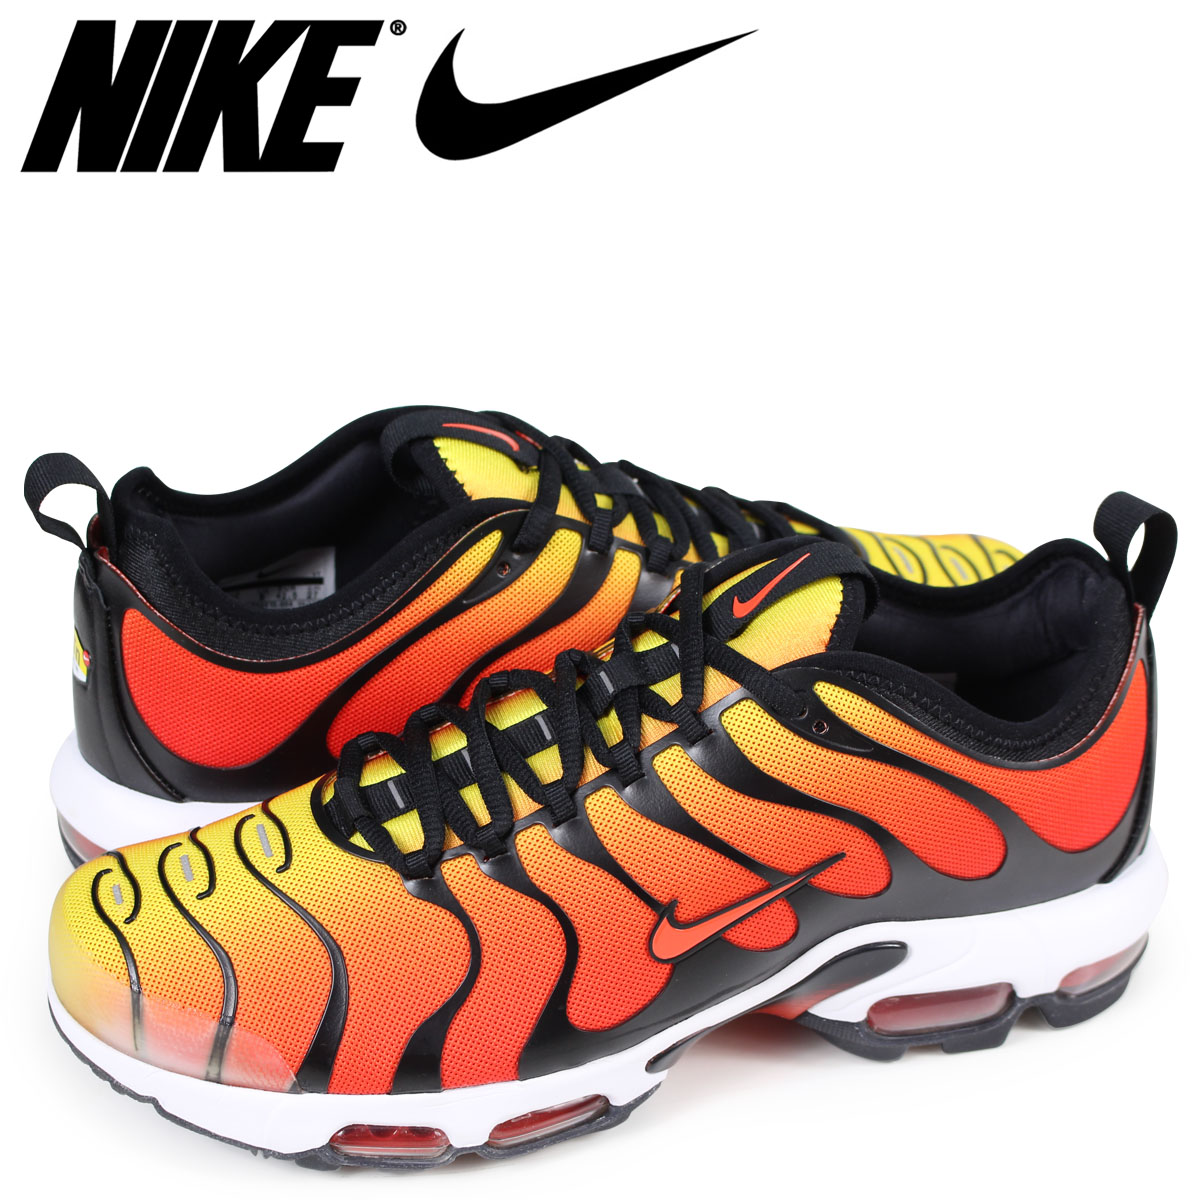 the latest 51b02 76dc6 Nike NIKE Air Max plus sneakers men AIR MAX PLUS TN ULTRA 898,015-004 orange